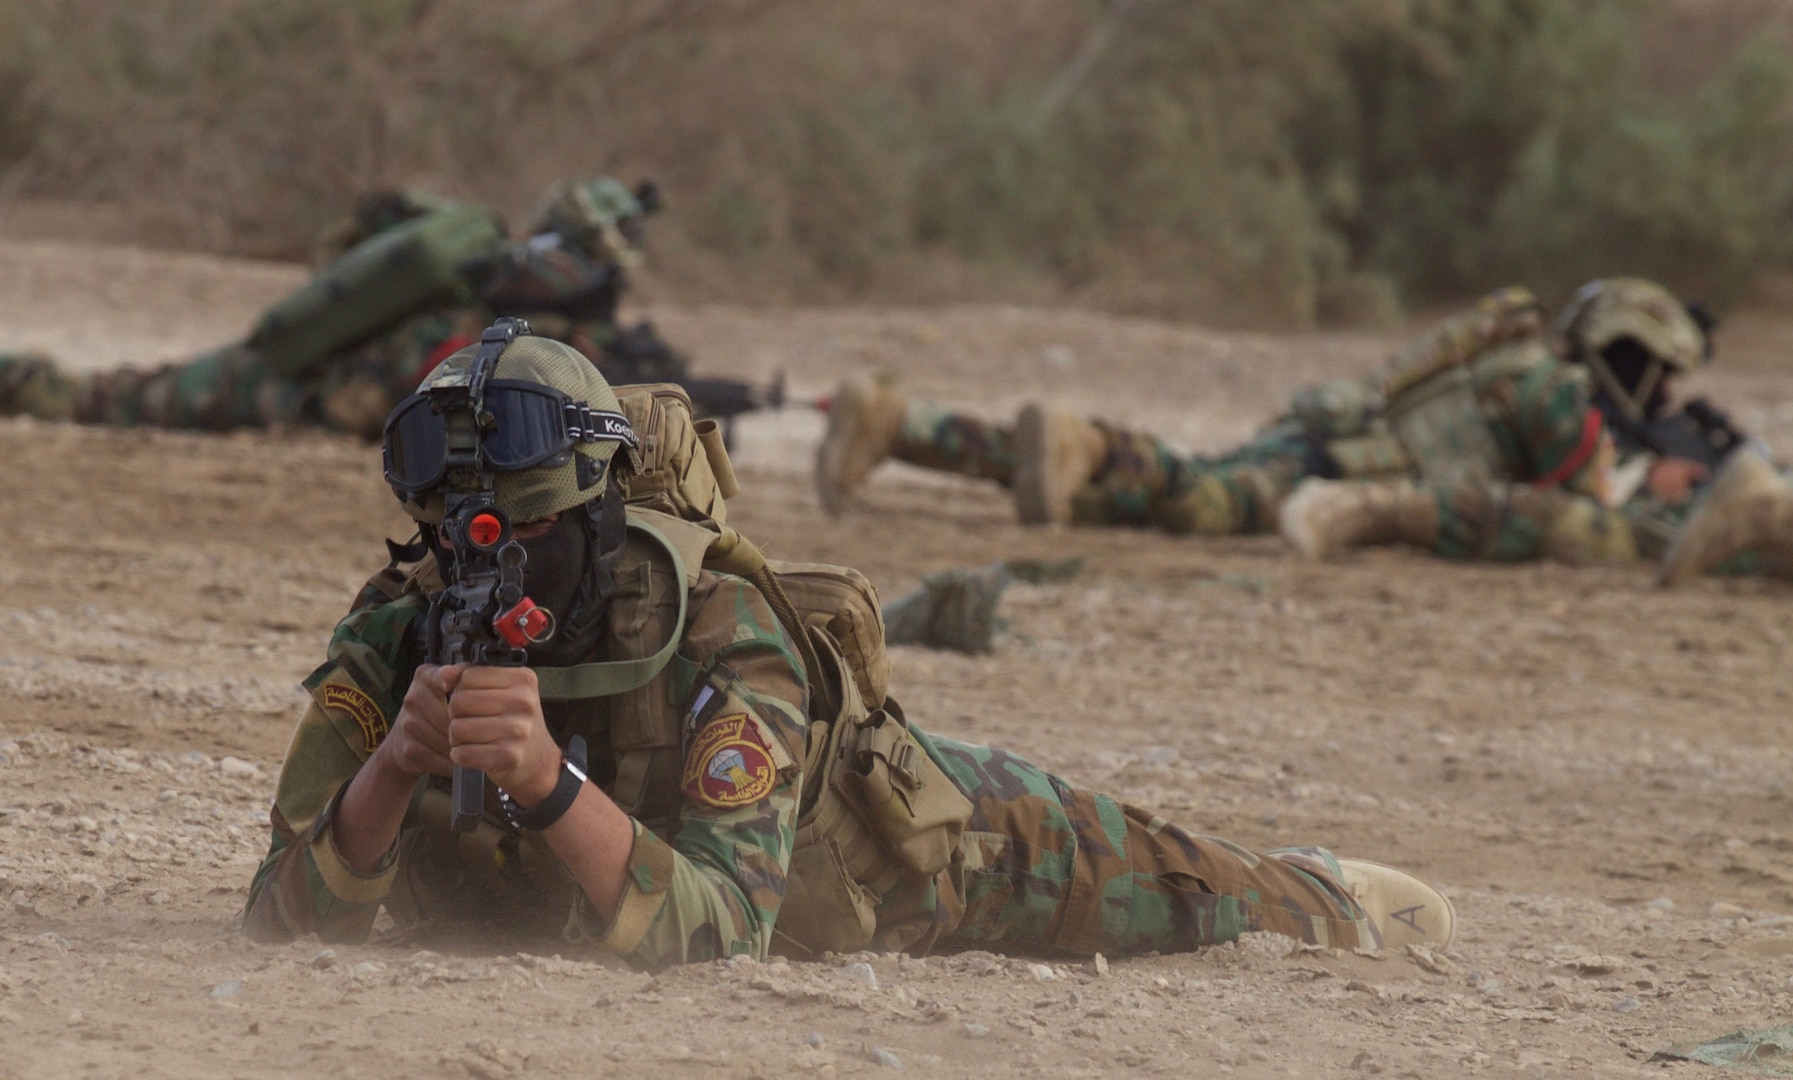 Members of the Iraqi special forces provide security during a final air mobility operations exercise at Camp Taji, Iraq.